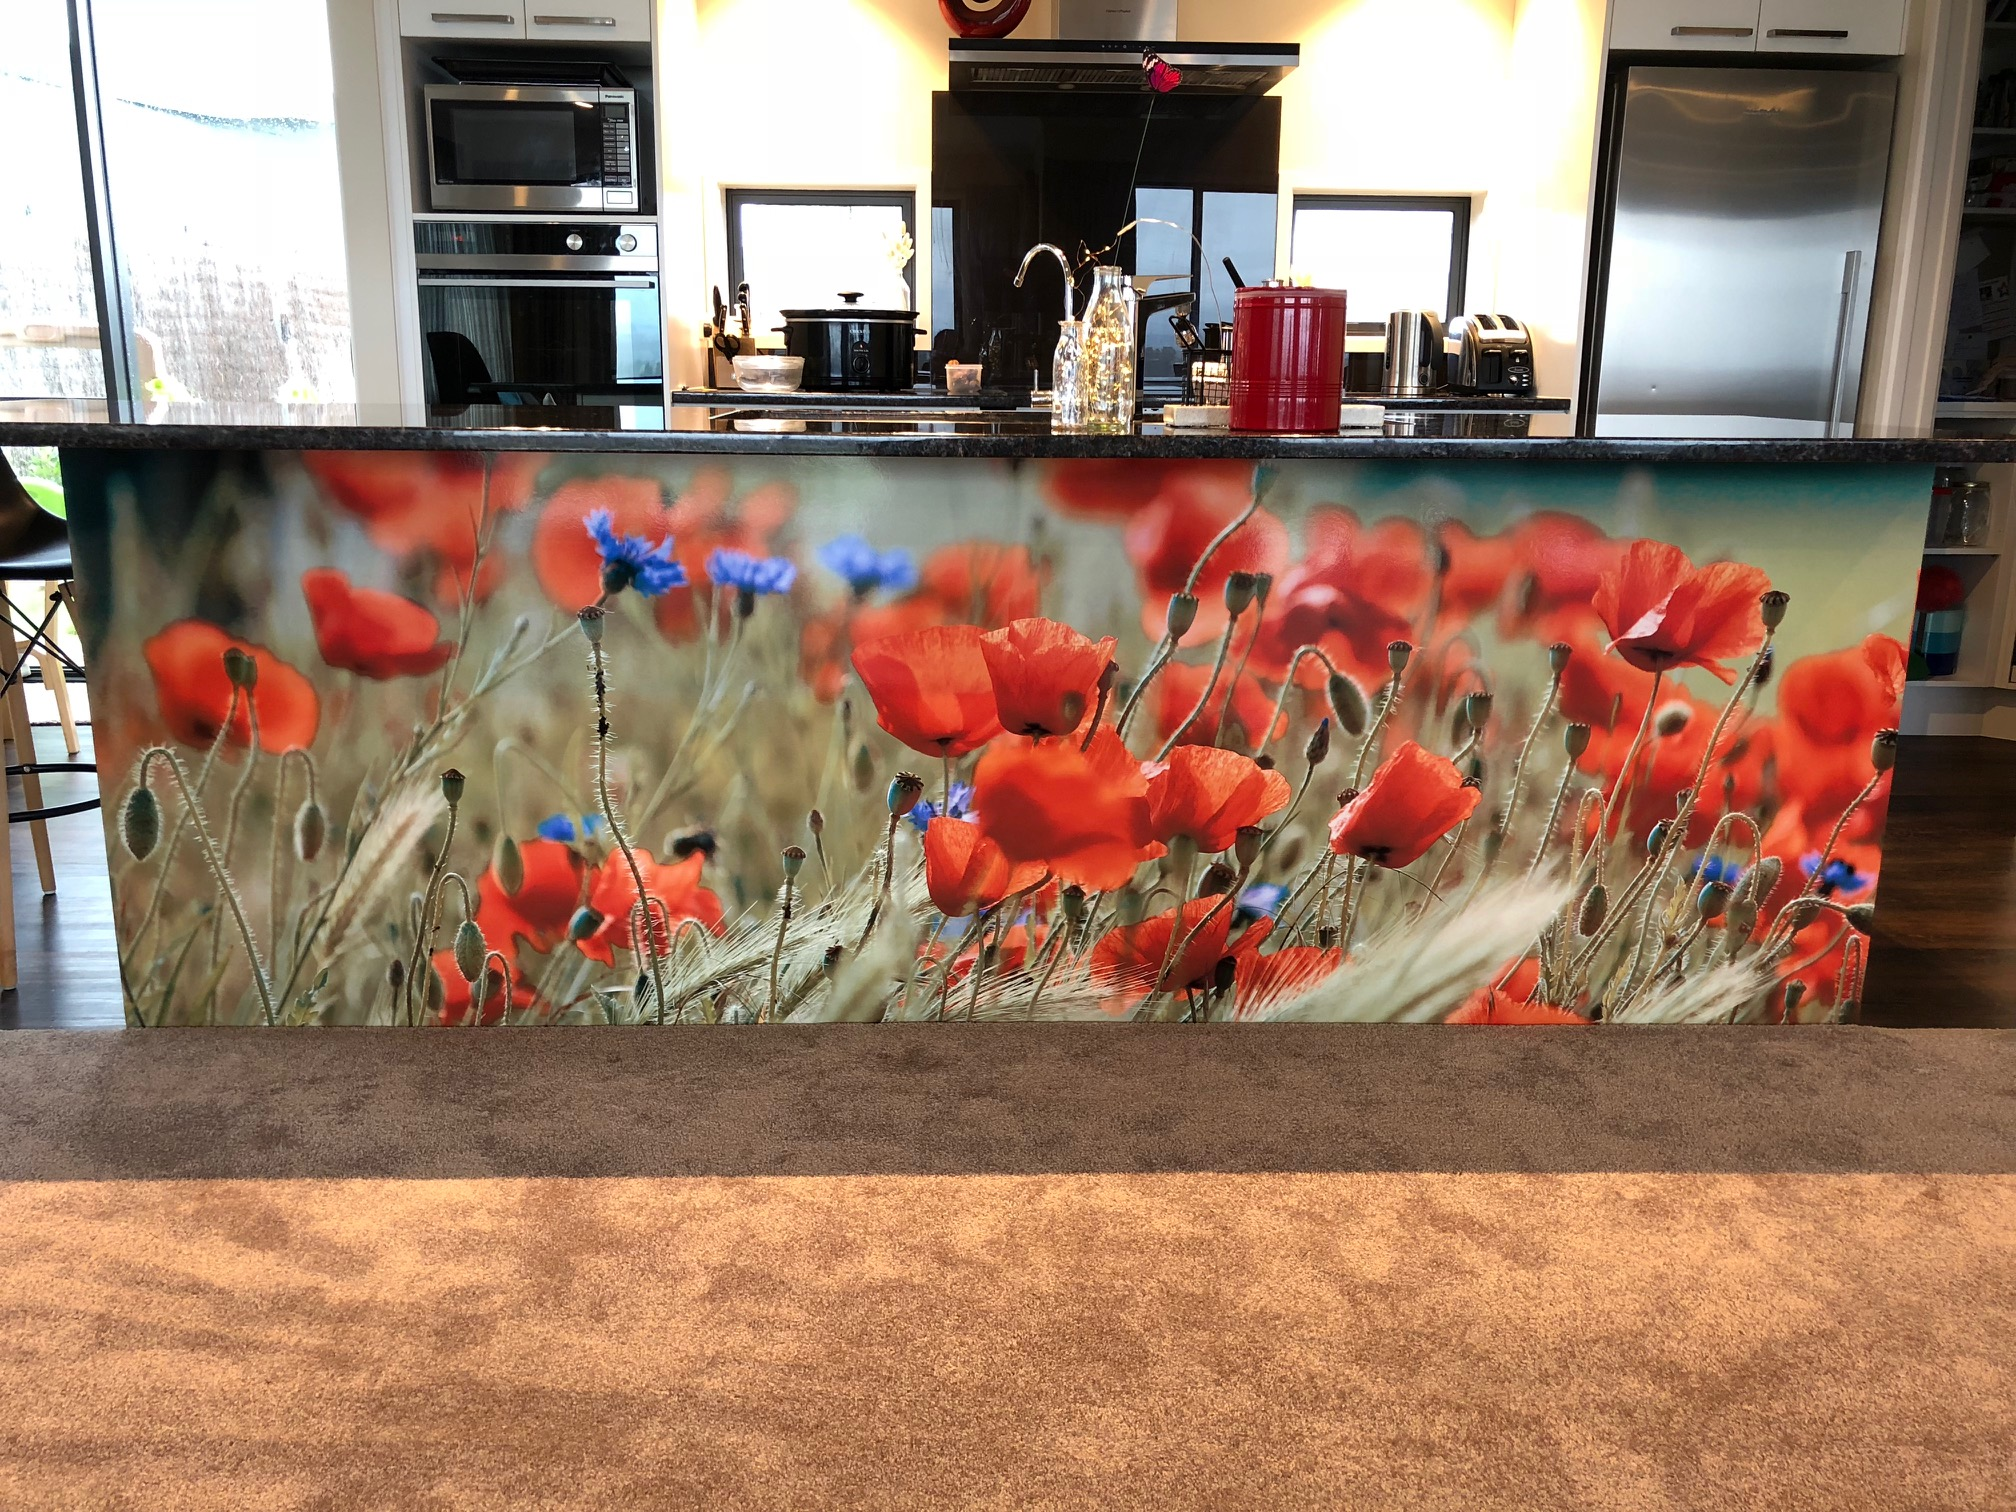 Kitchen barback panel - poppies